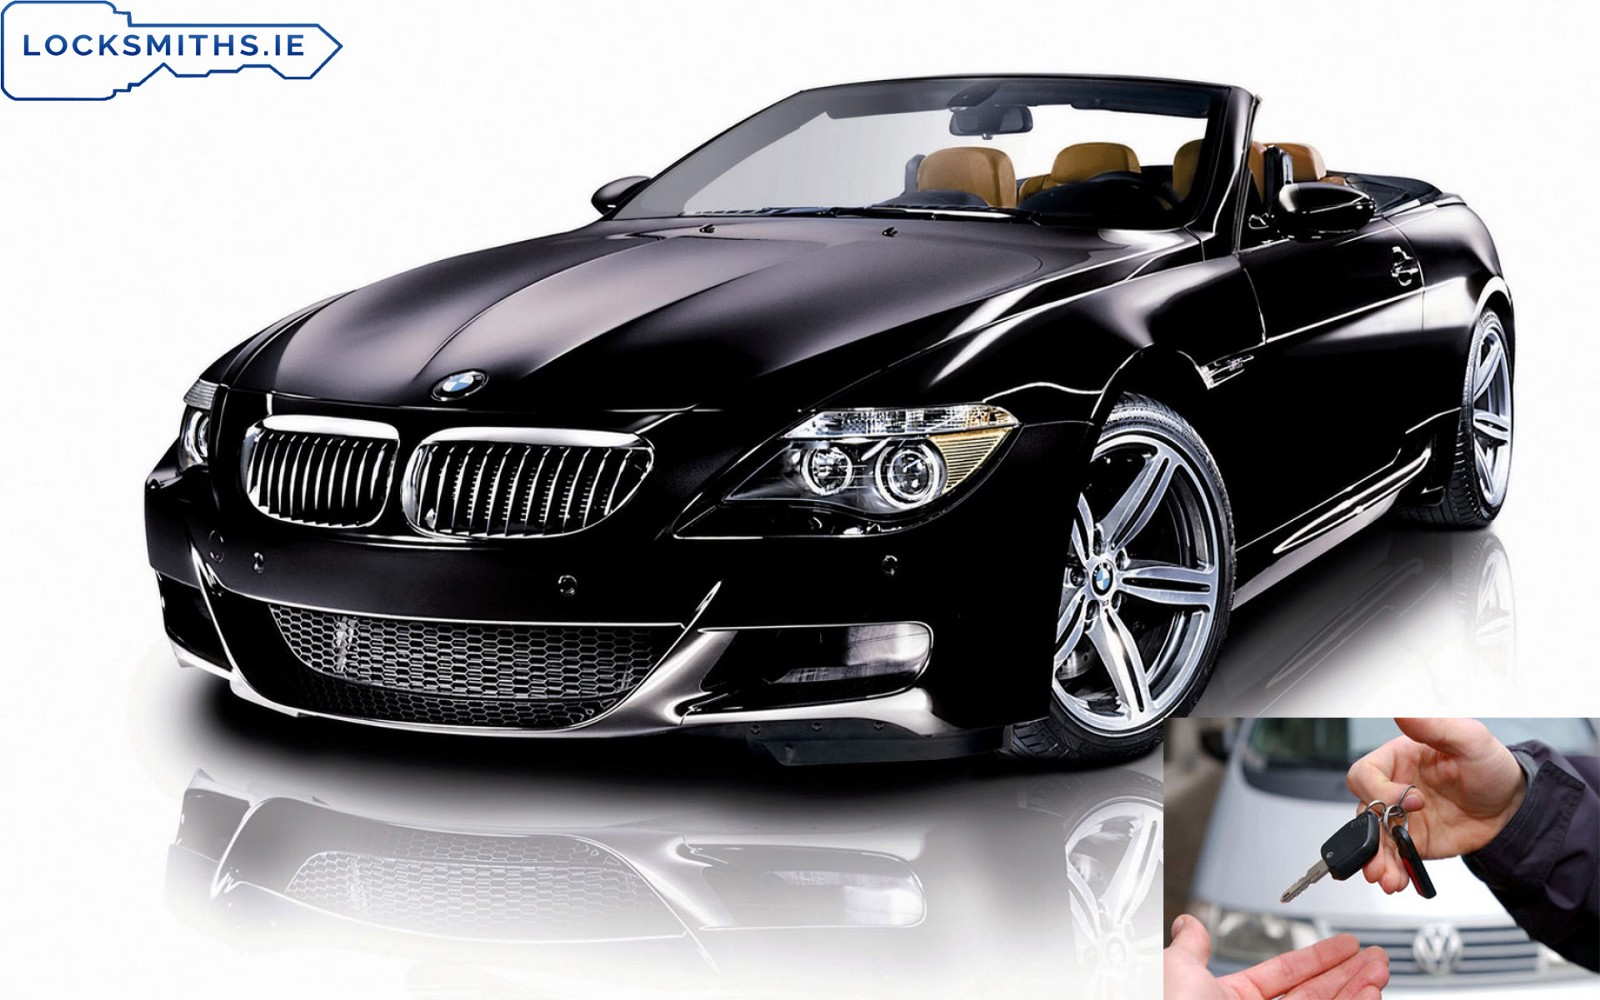 Know significant reasons of acquiring replacement car key for your Bmw